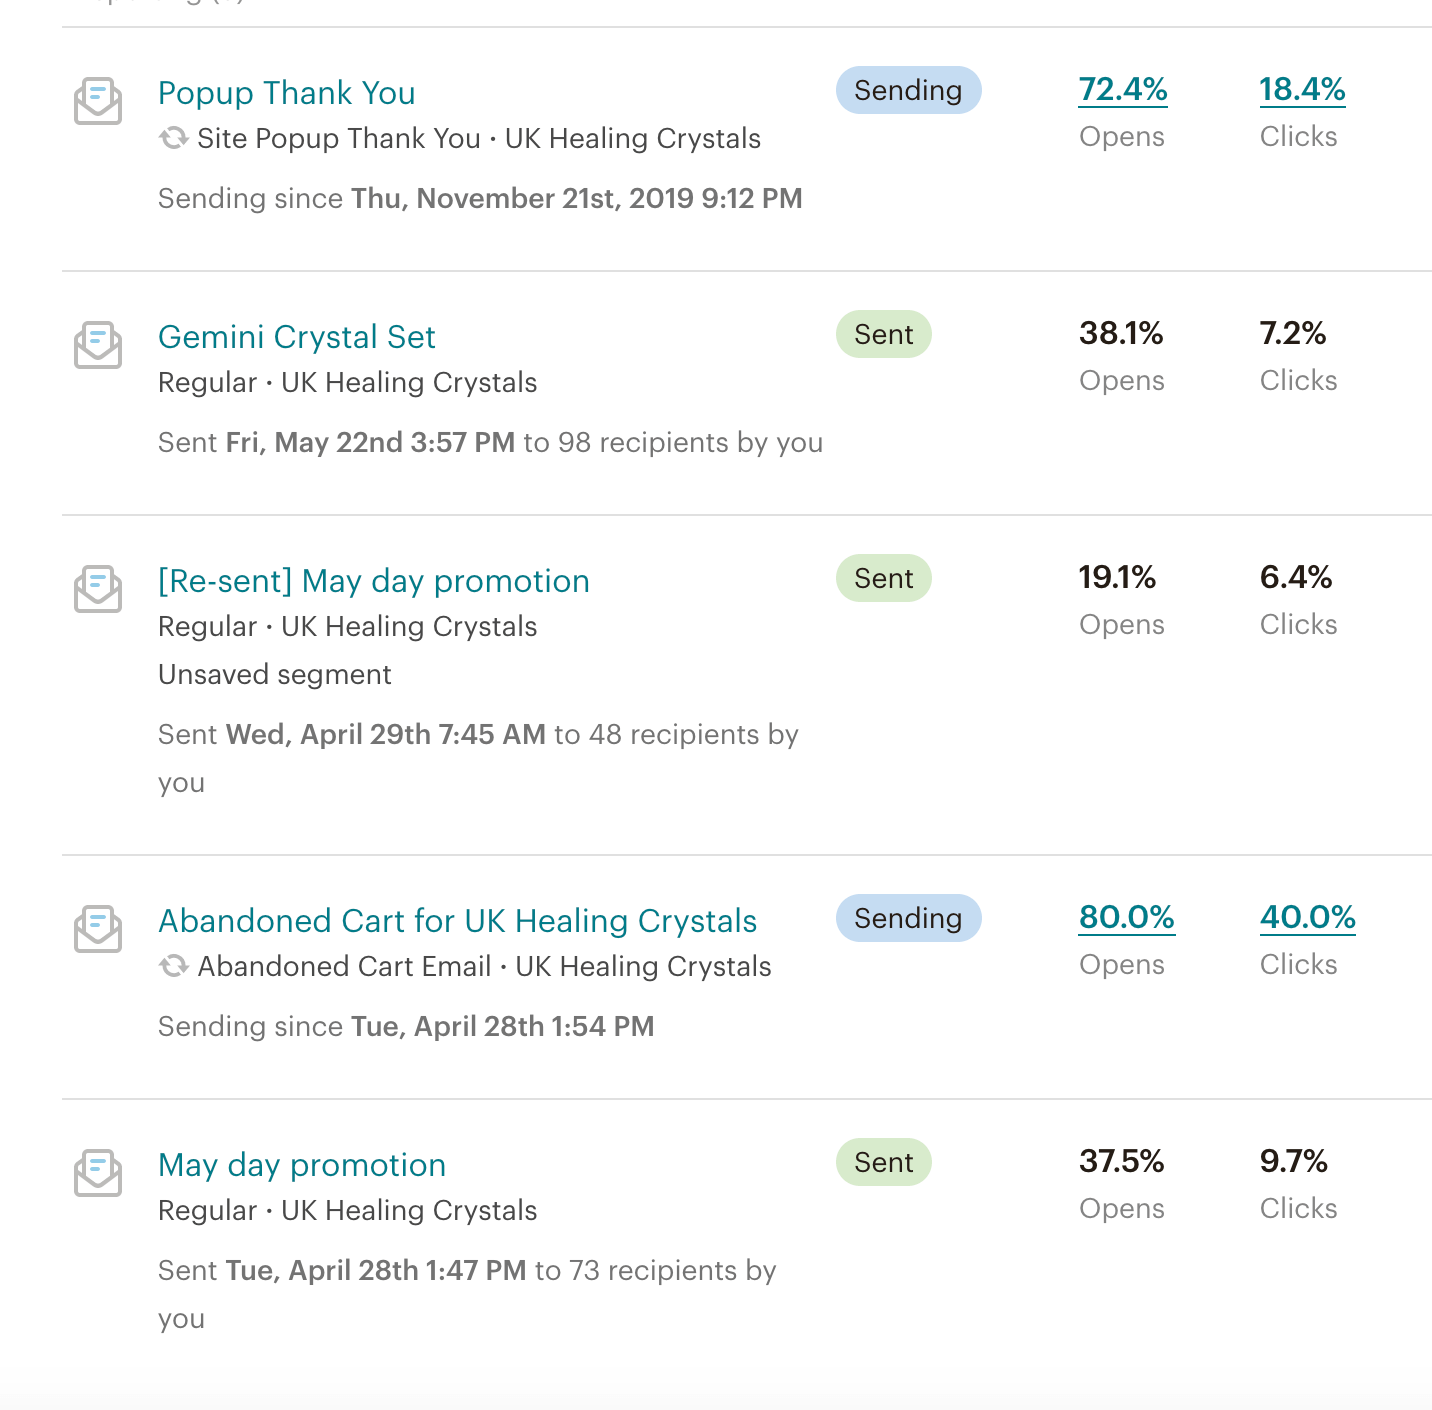 Mailchimp Email Marketing results for Q2 so far